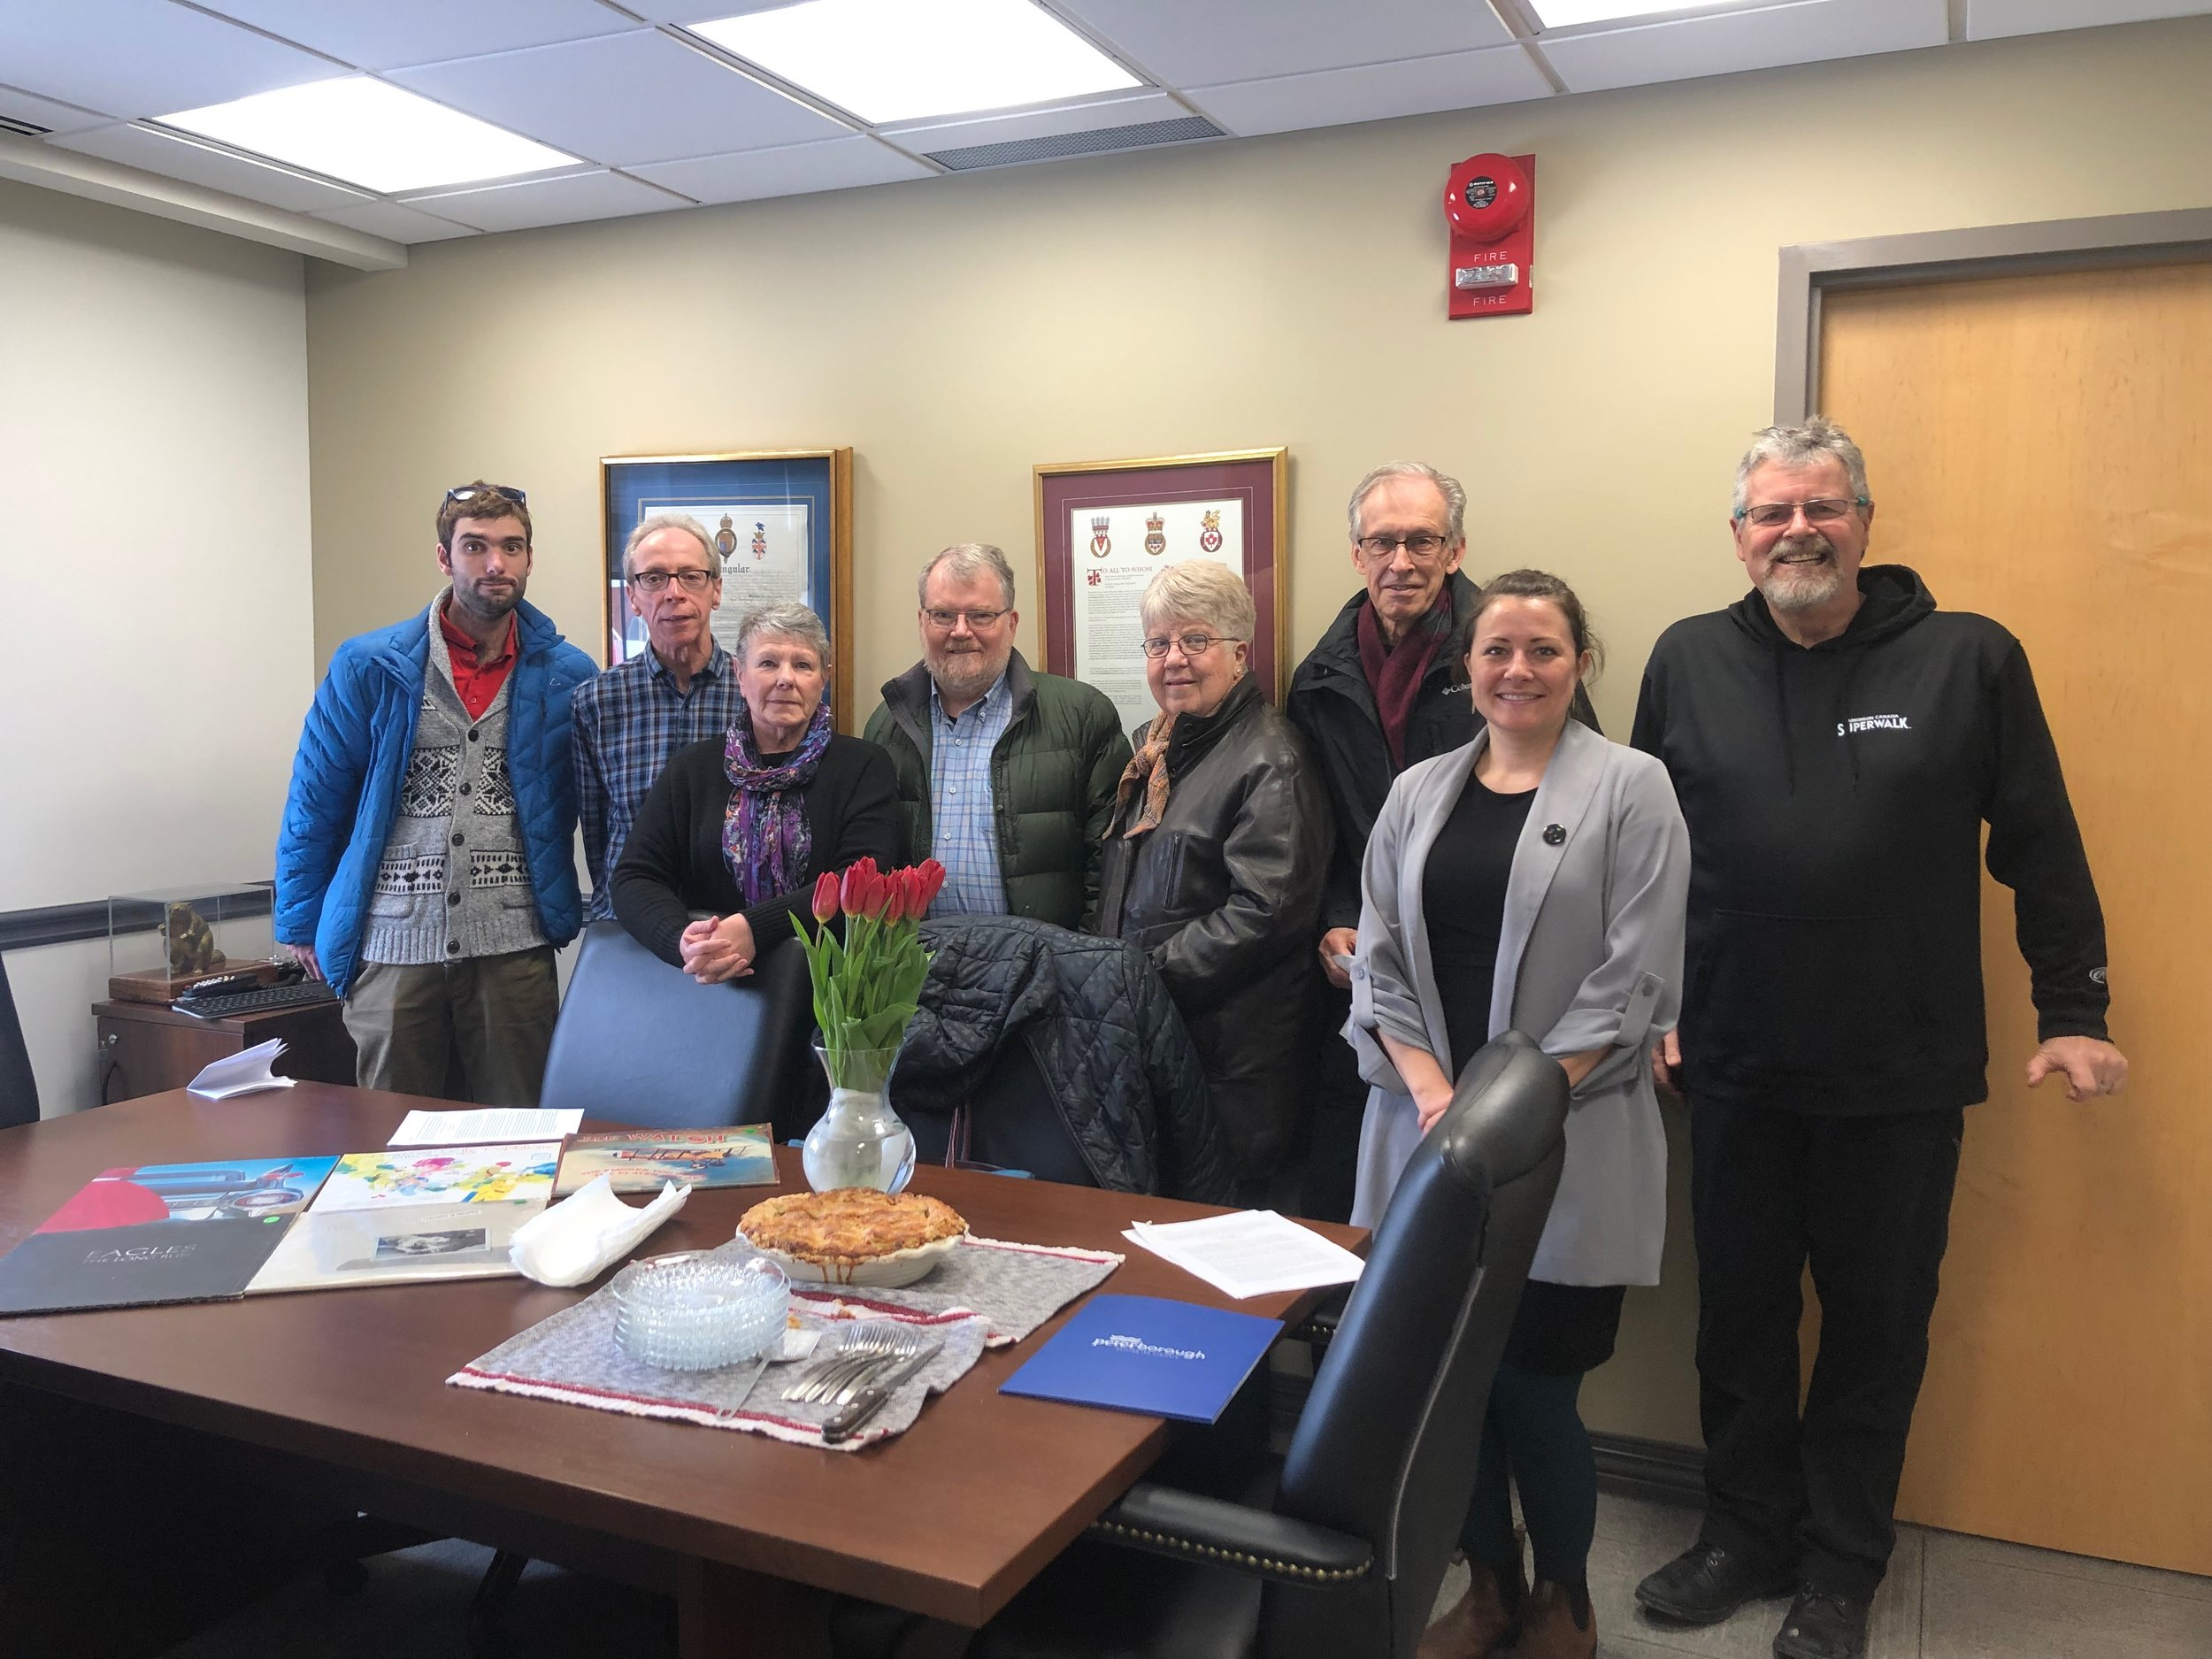 In the mayor's office - On April 2, 2019, a delegation from the Peterborough Parkinson's Chapter witness the Mayor's declartion of April as Parkinson's Awareness Month. Some Albums for the Sale on April 27th event are on the table with tulips as well as Joe's apple pie shared & enjoyed by all.